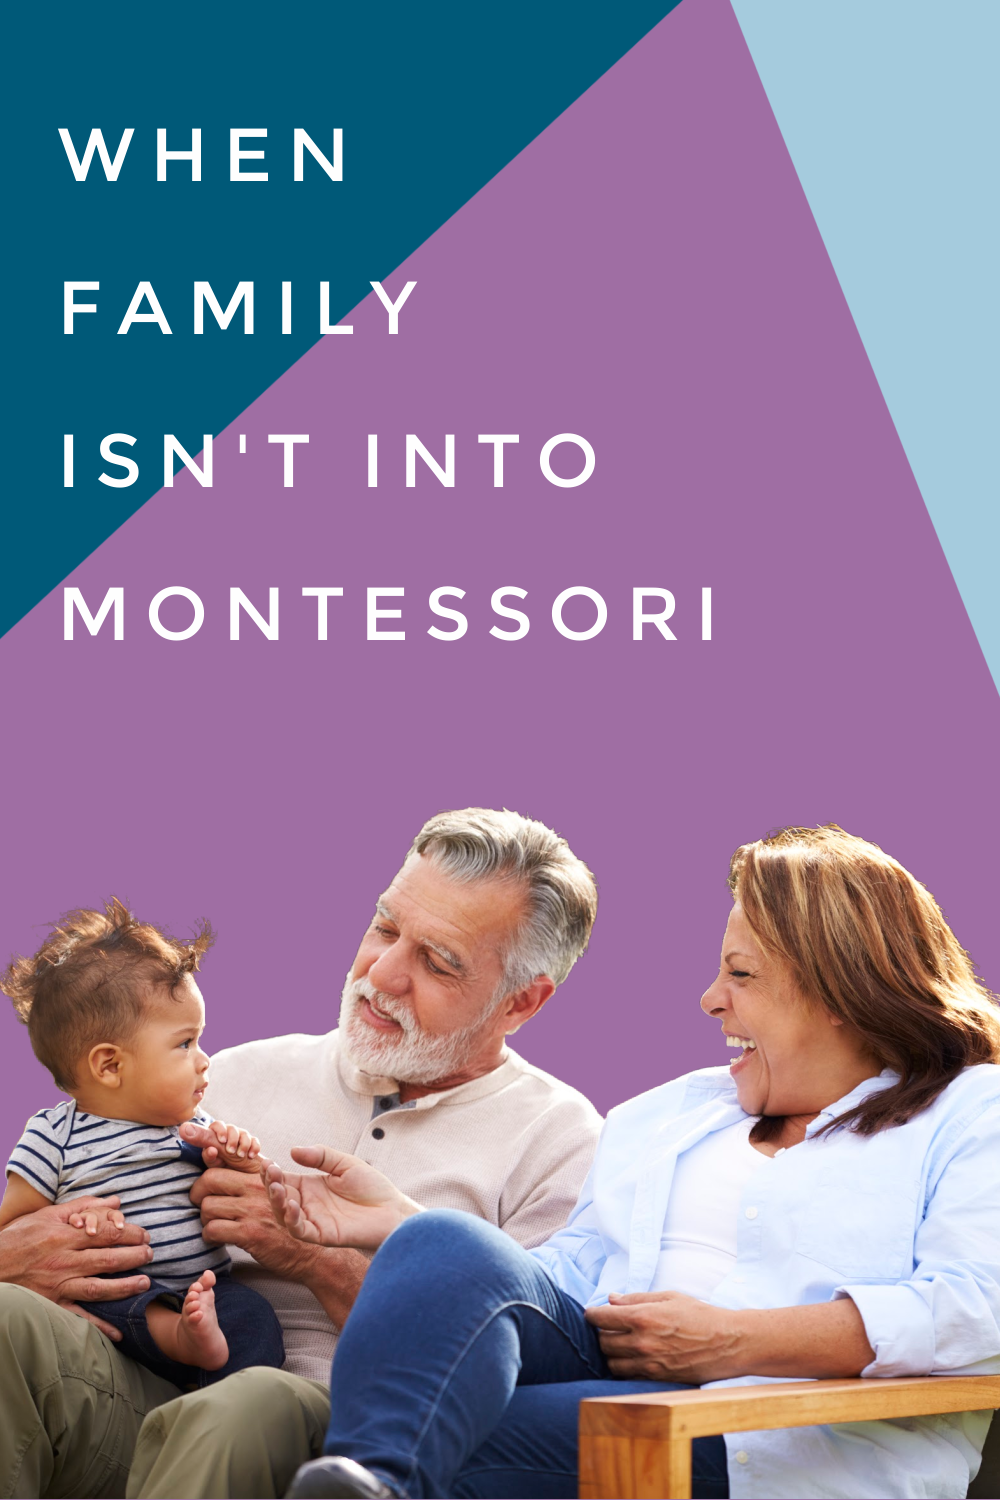 In this Montessori parenting podcast, we discuss how to approach family and friends who parent differently than you, specifically from Montessori